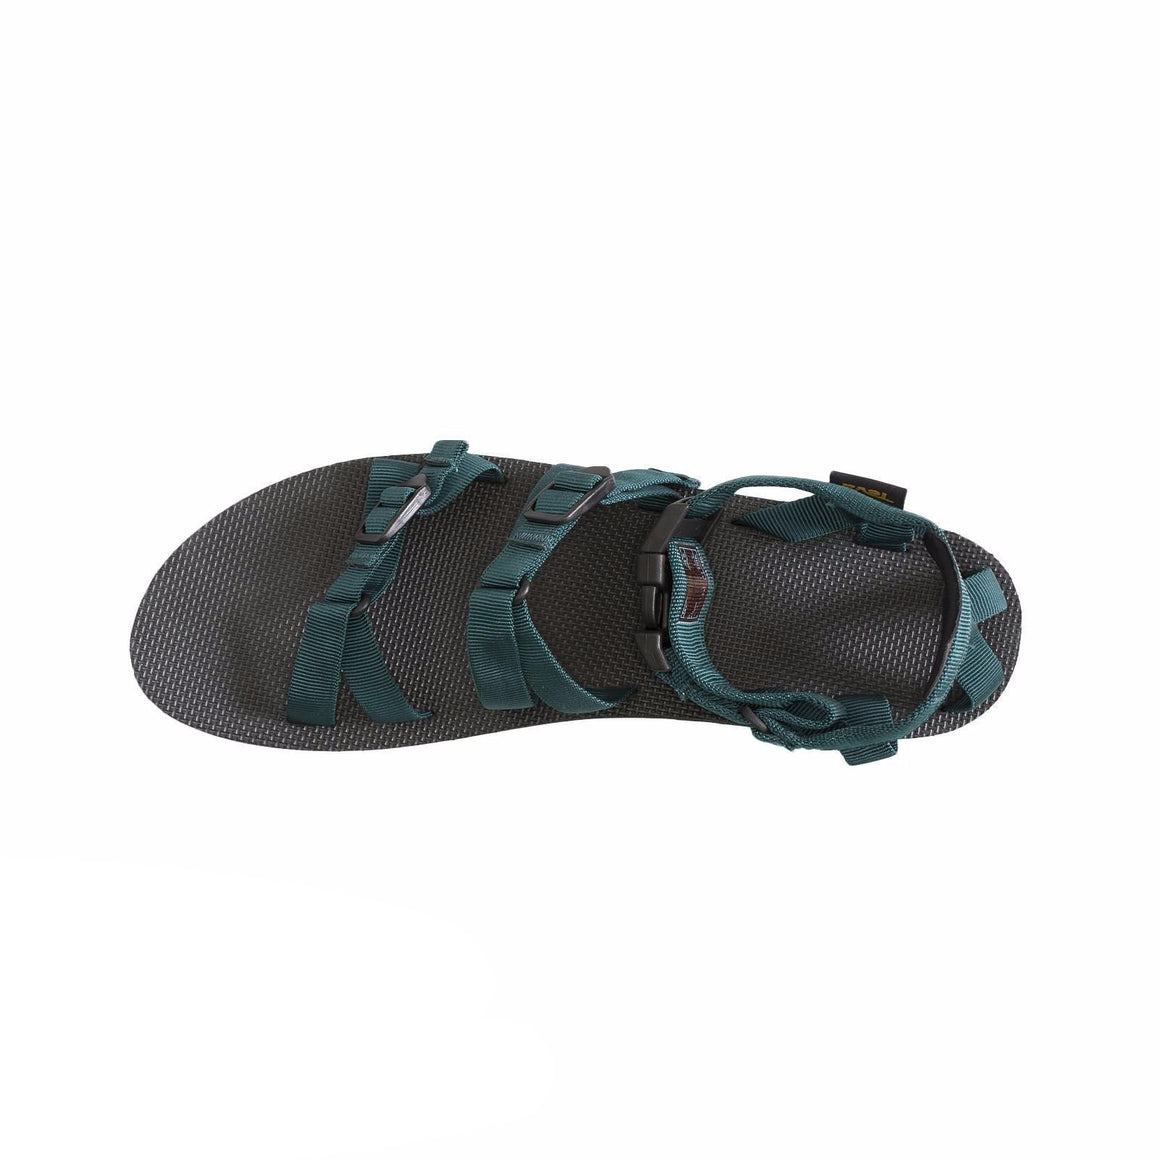 Teva Alp Deep Teal Sandals